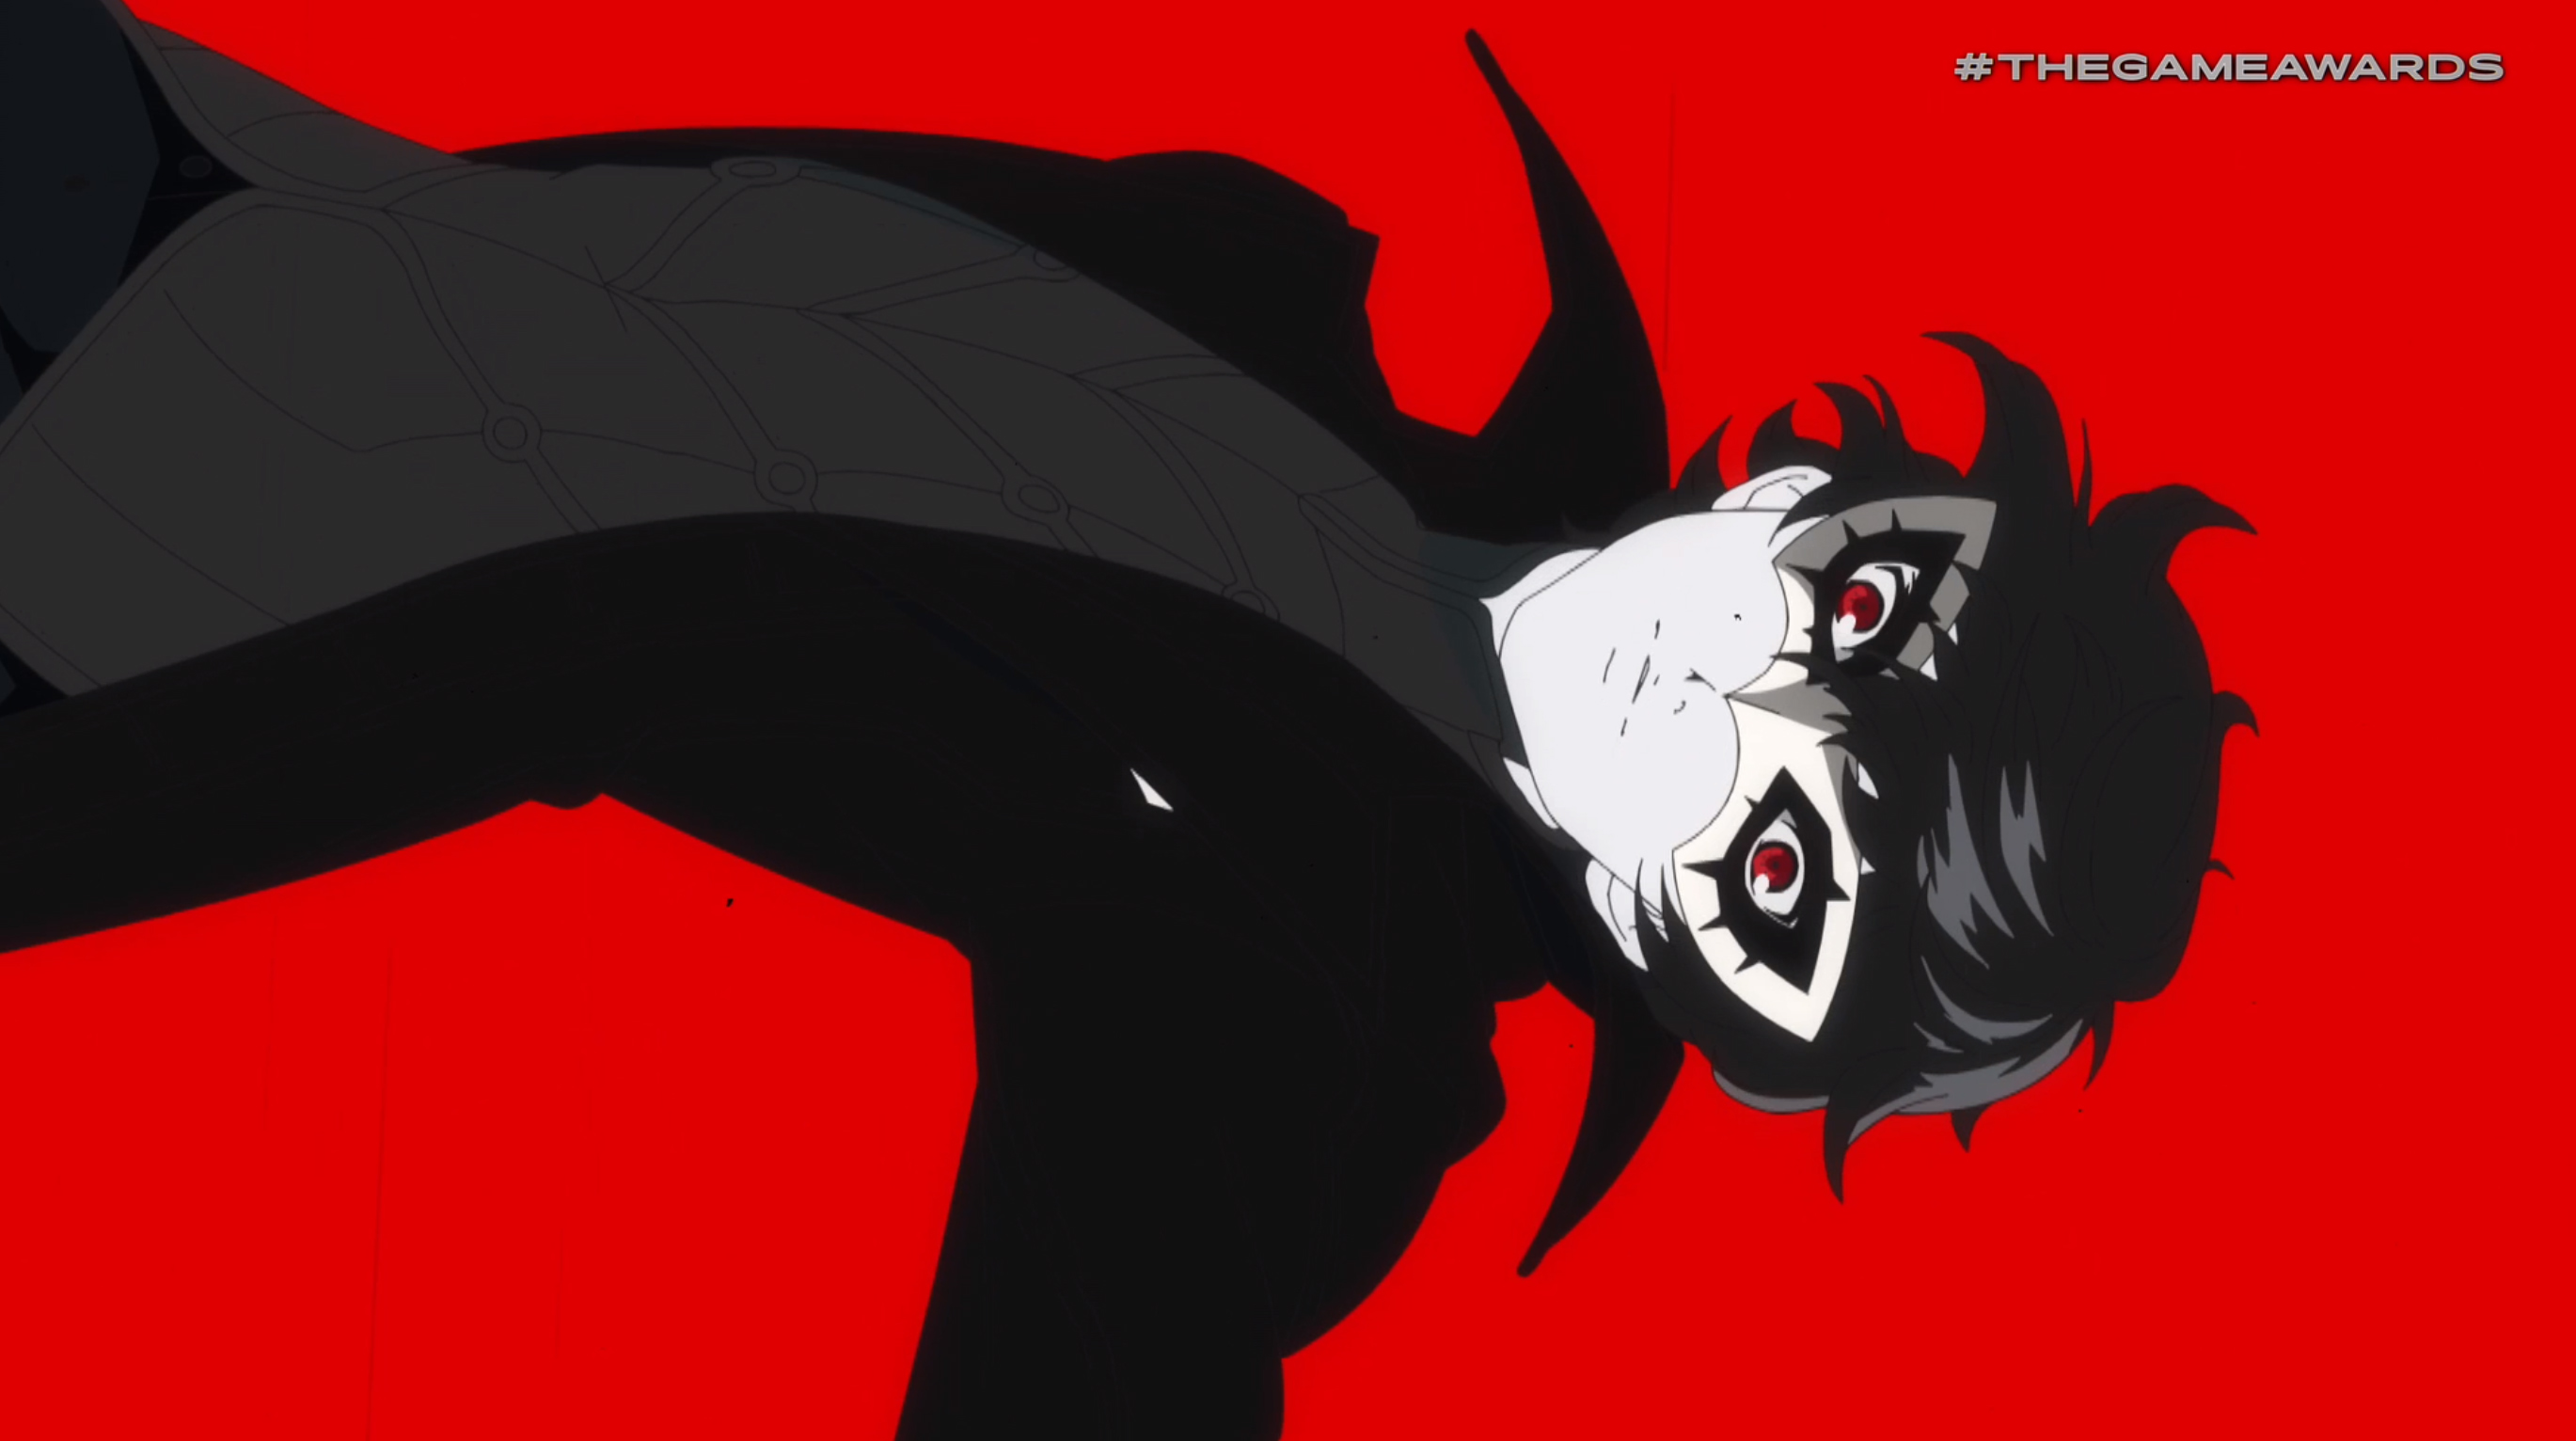 Super Smash Bros Ultimate S Dlc Character Is Joker From Persona 5